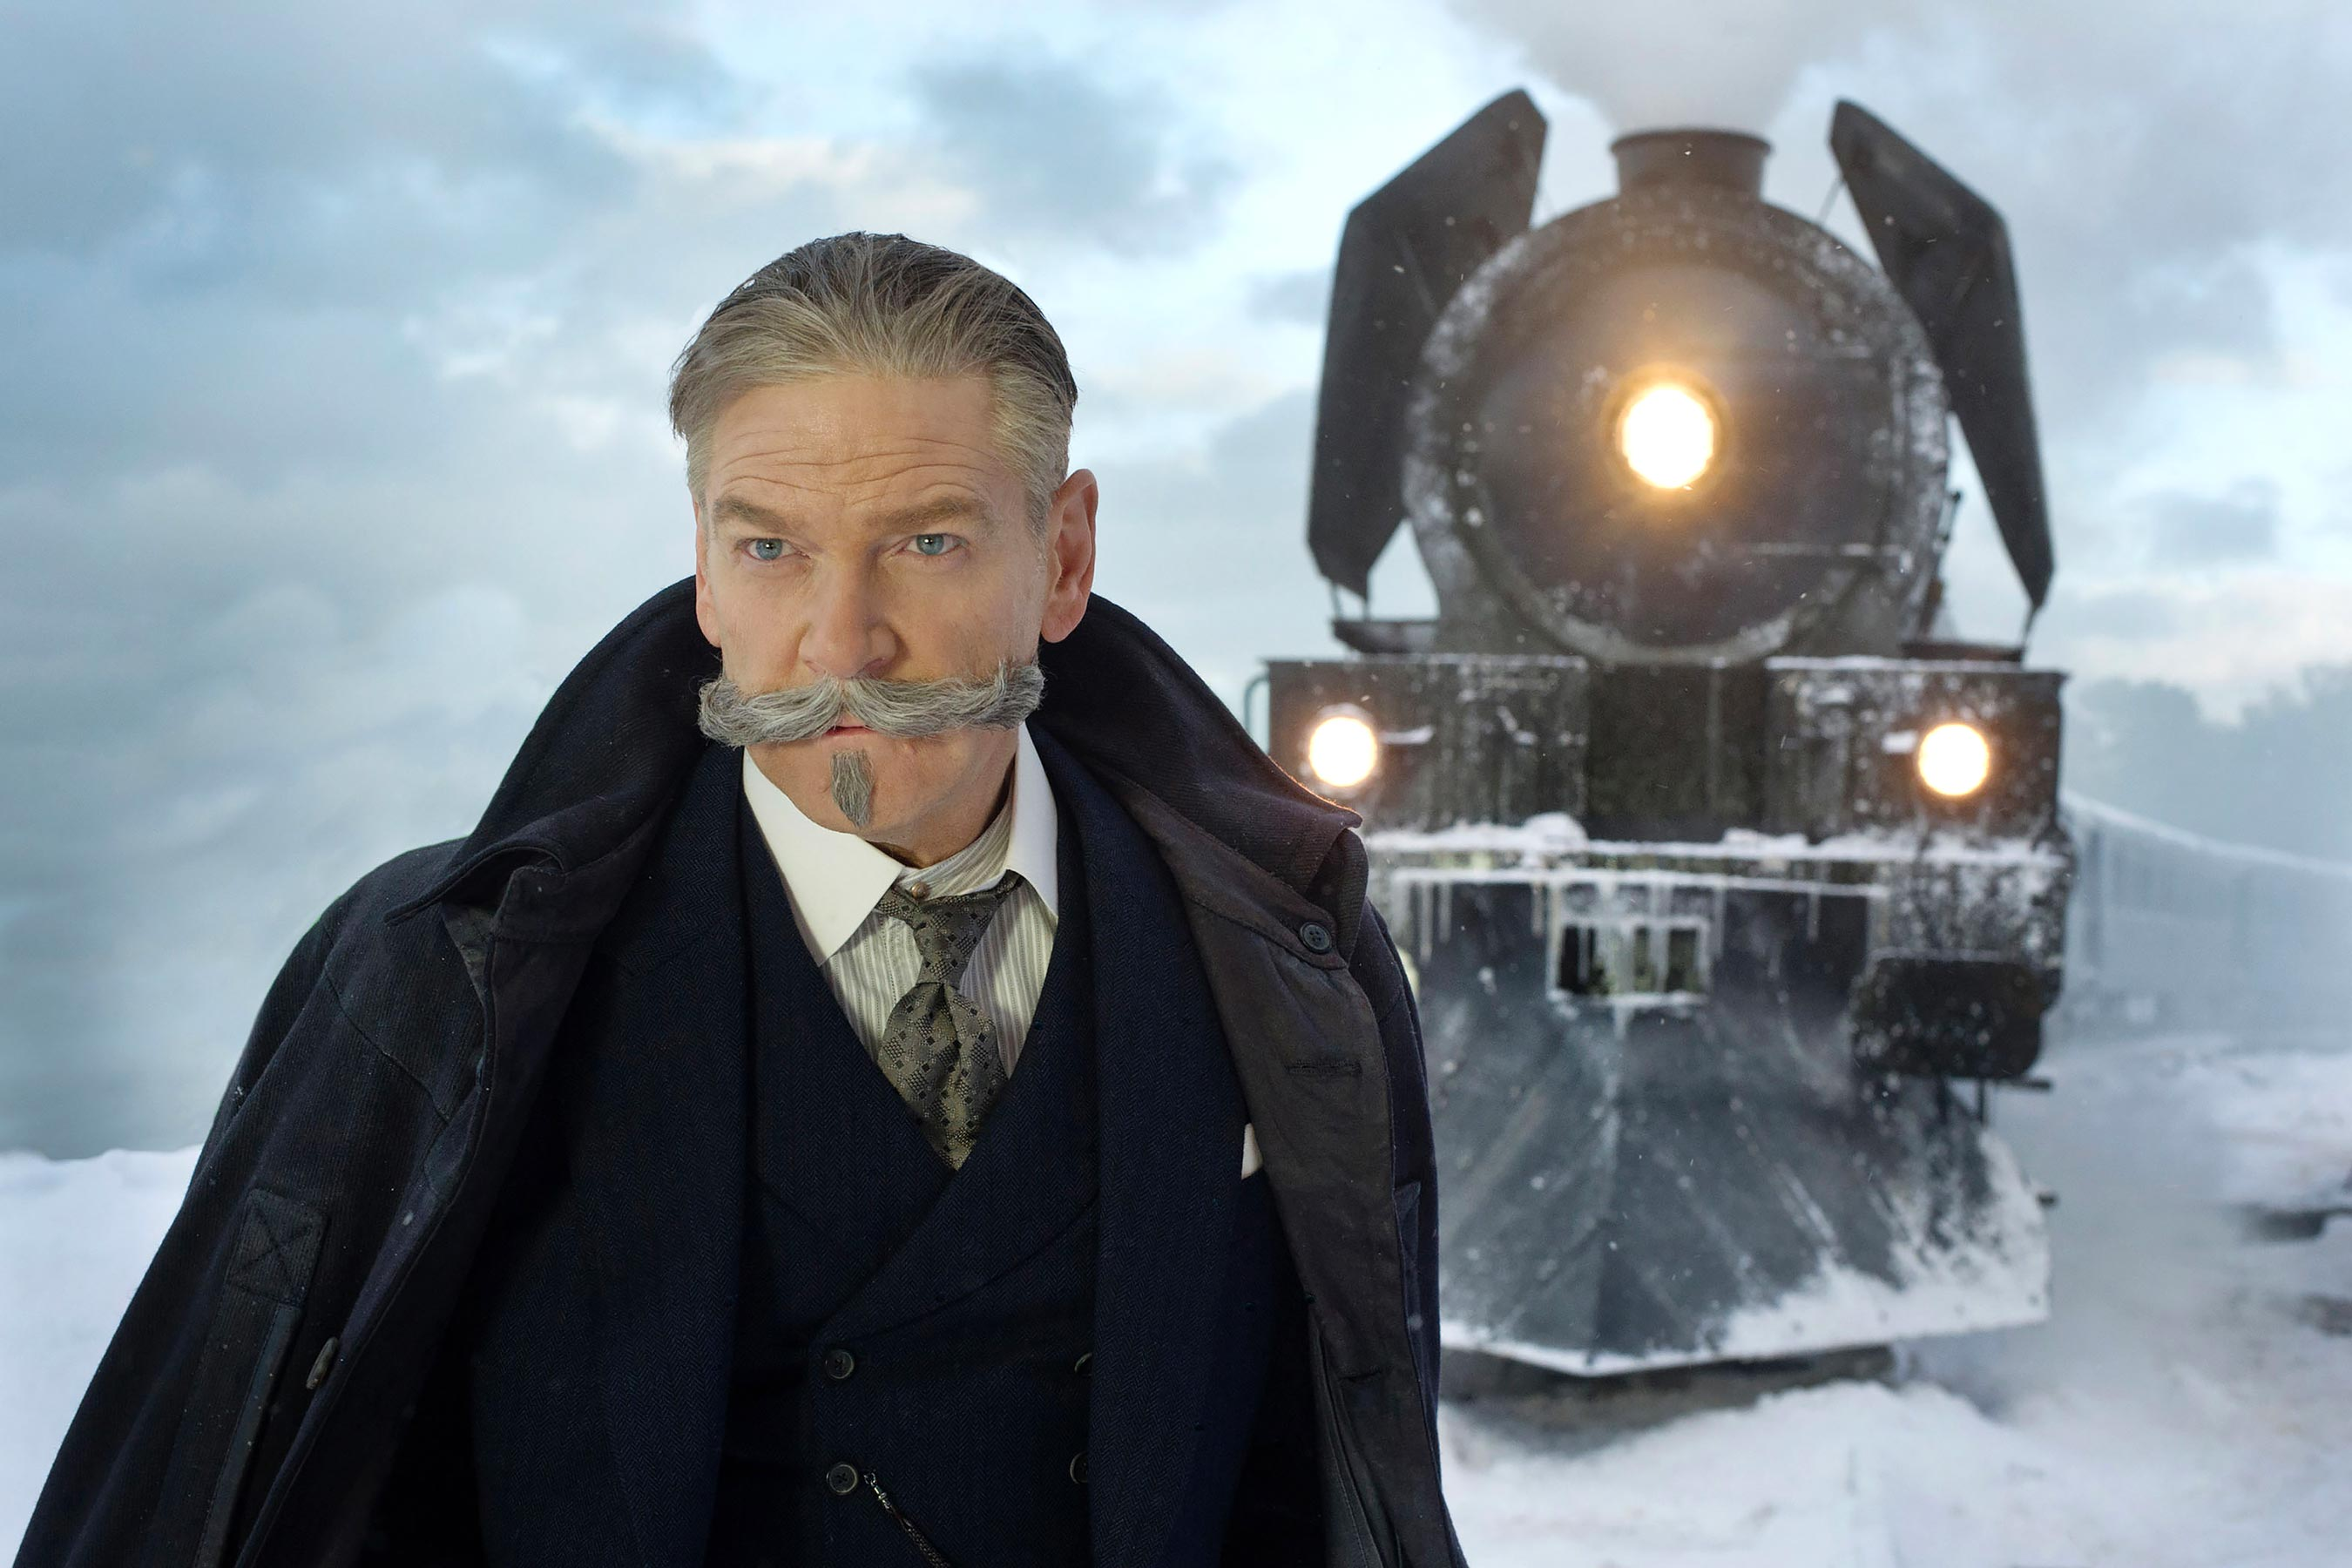 Murder on the Orient Express: Watch exclusive deleted scene